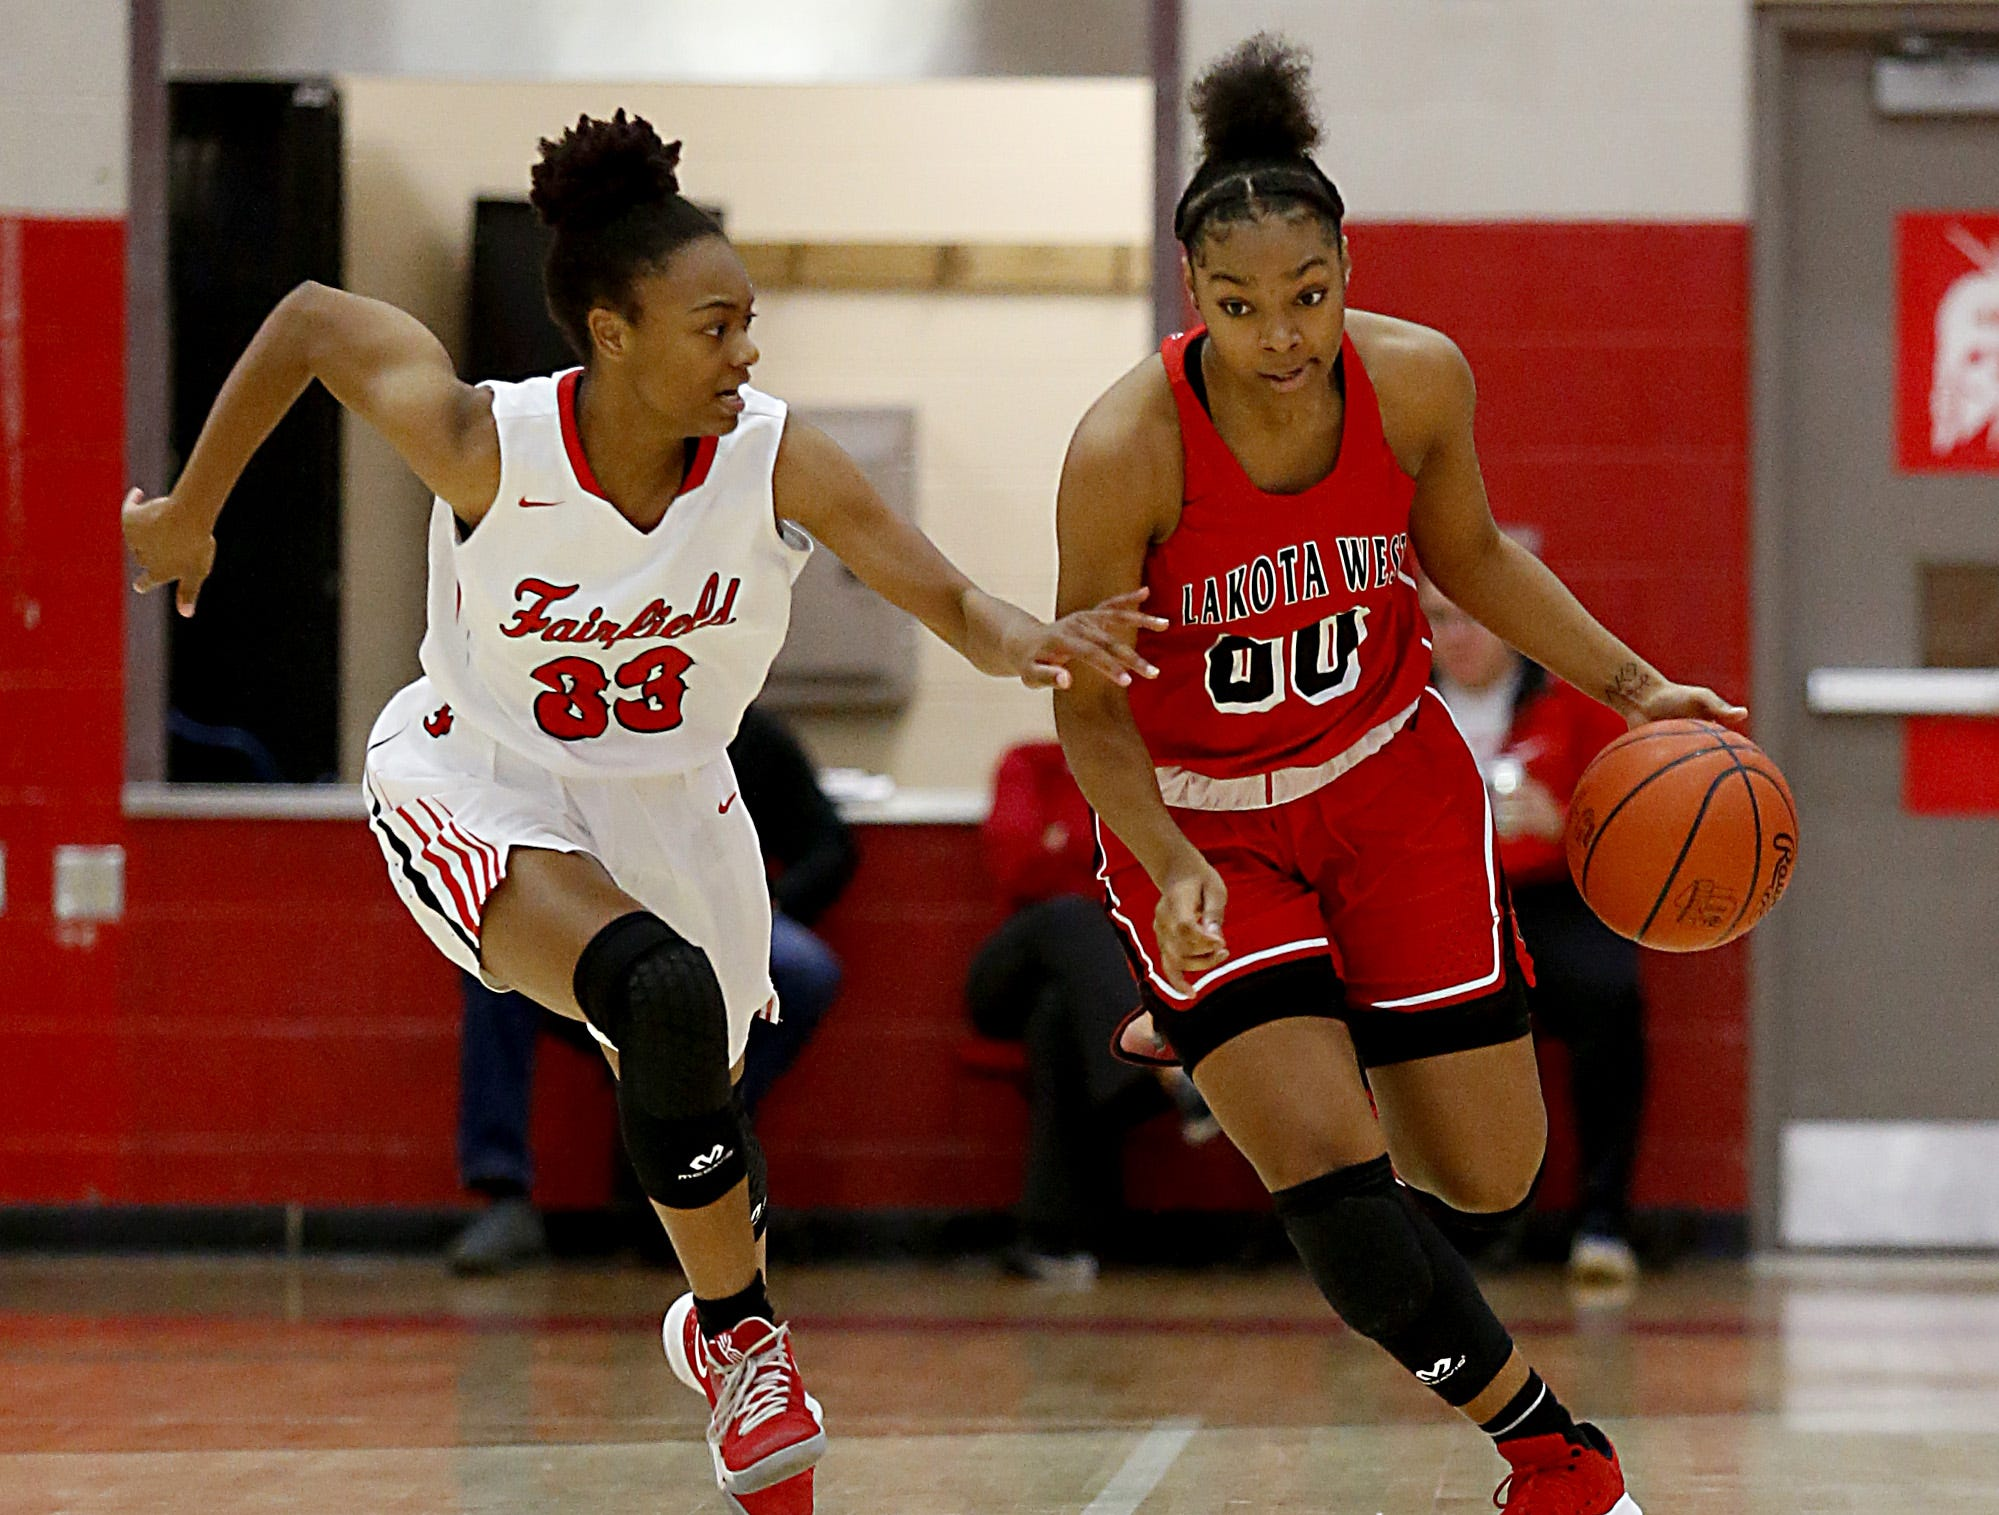 Lakota West guard Jaydis Gales is covered by Fairfield guard Kelis Jones during their game at Fairfield Saturday, Dec. 1, 2018.